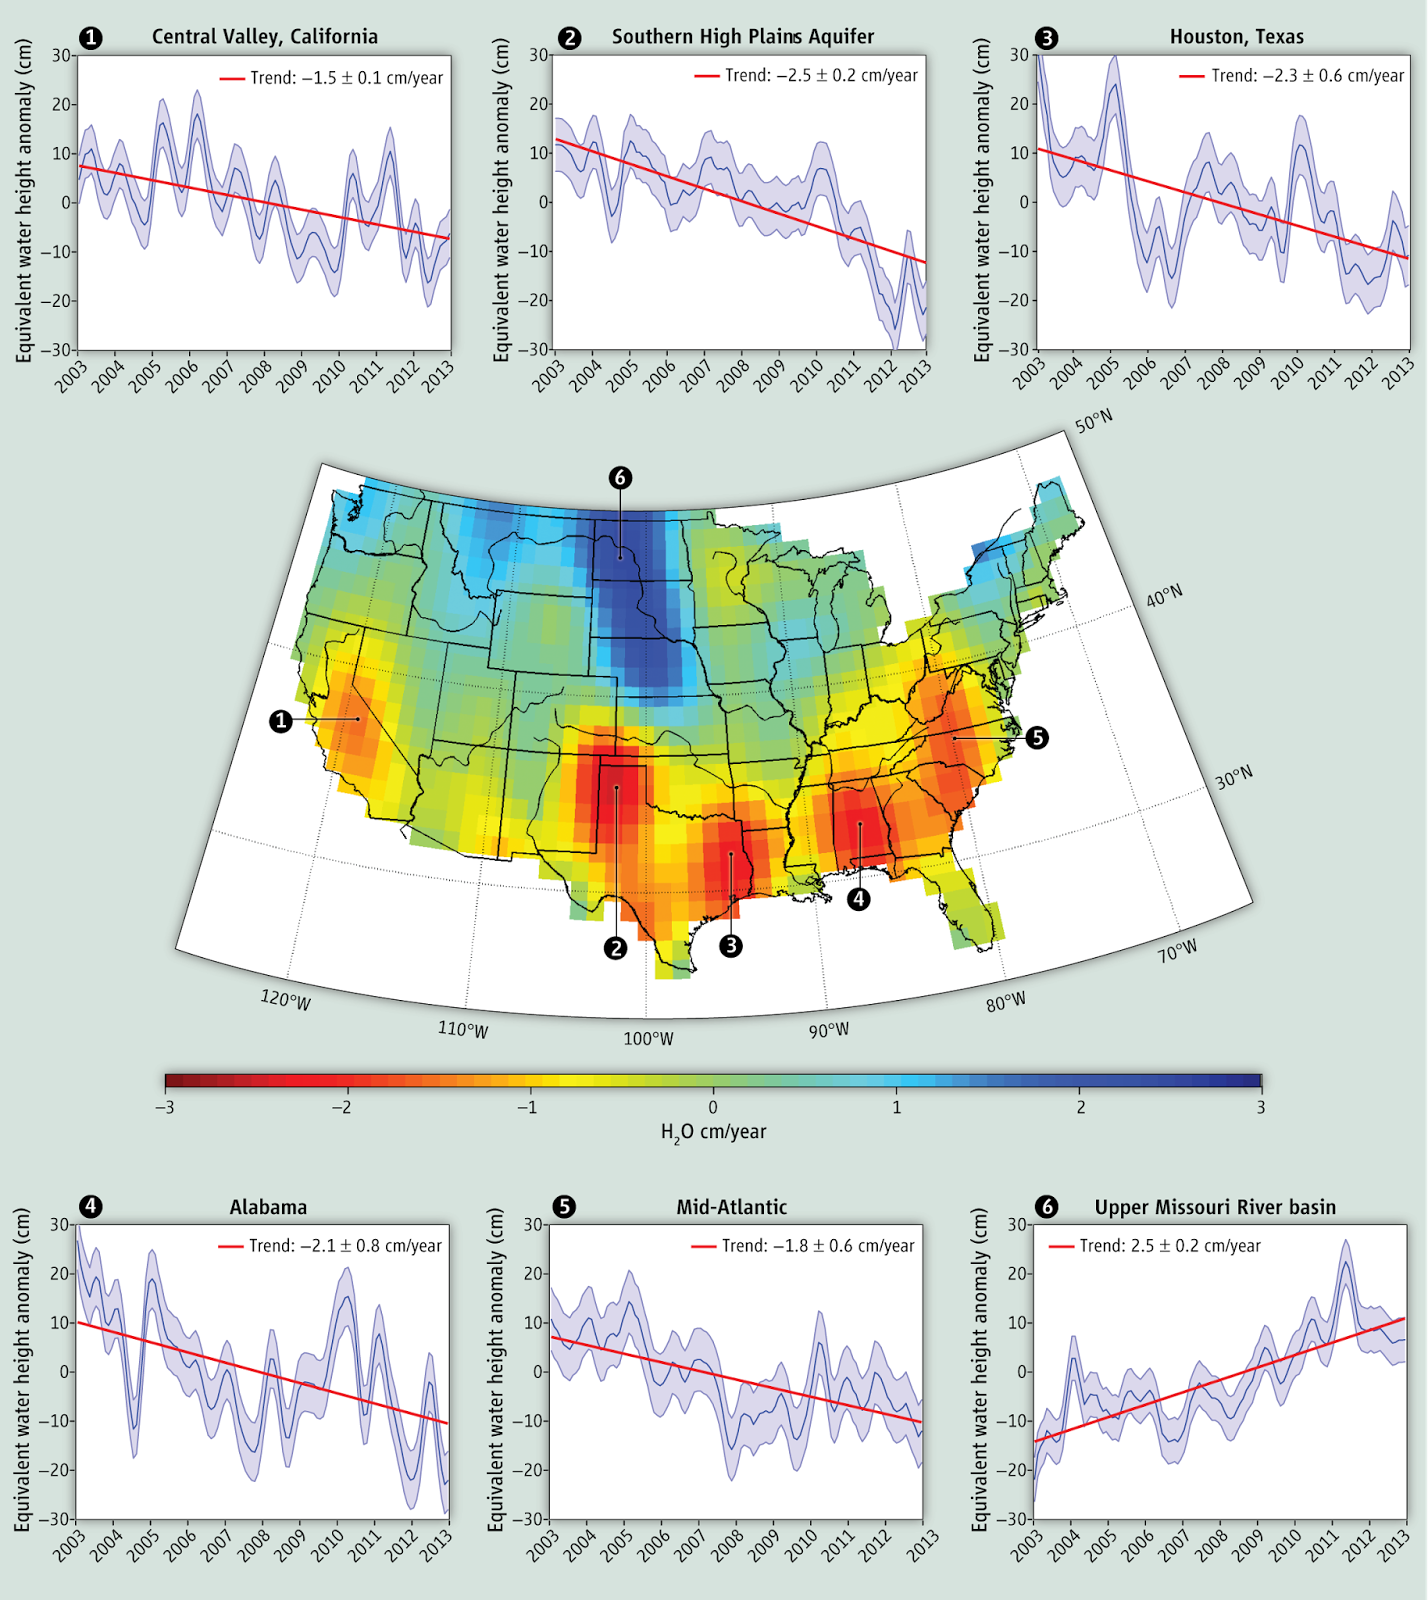 The National Climate Assessment Report Also Examines The More Controversial Concept Of Human Induced Climate Change Finding That Human Activities Do